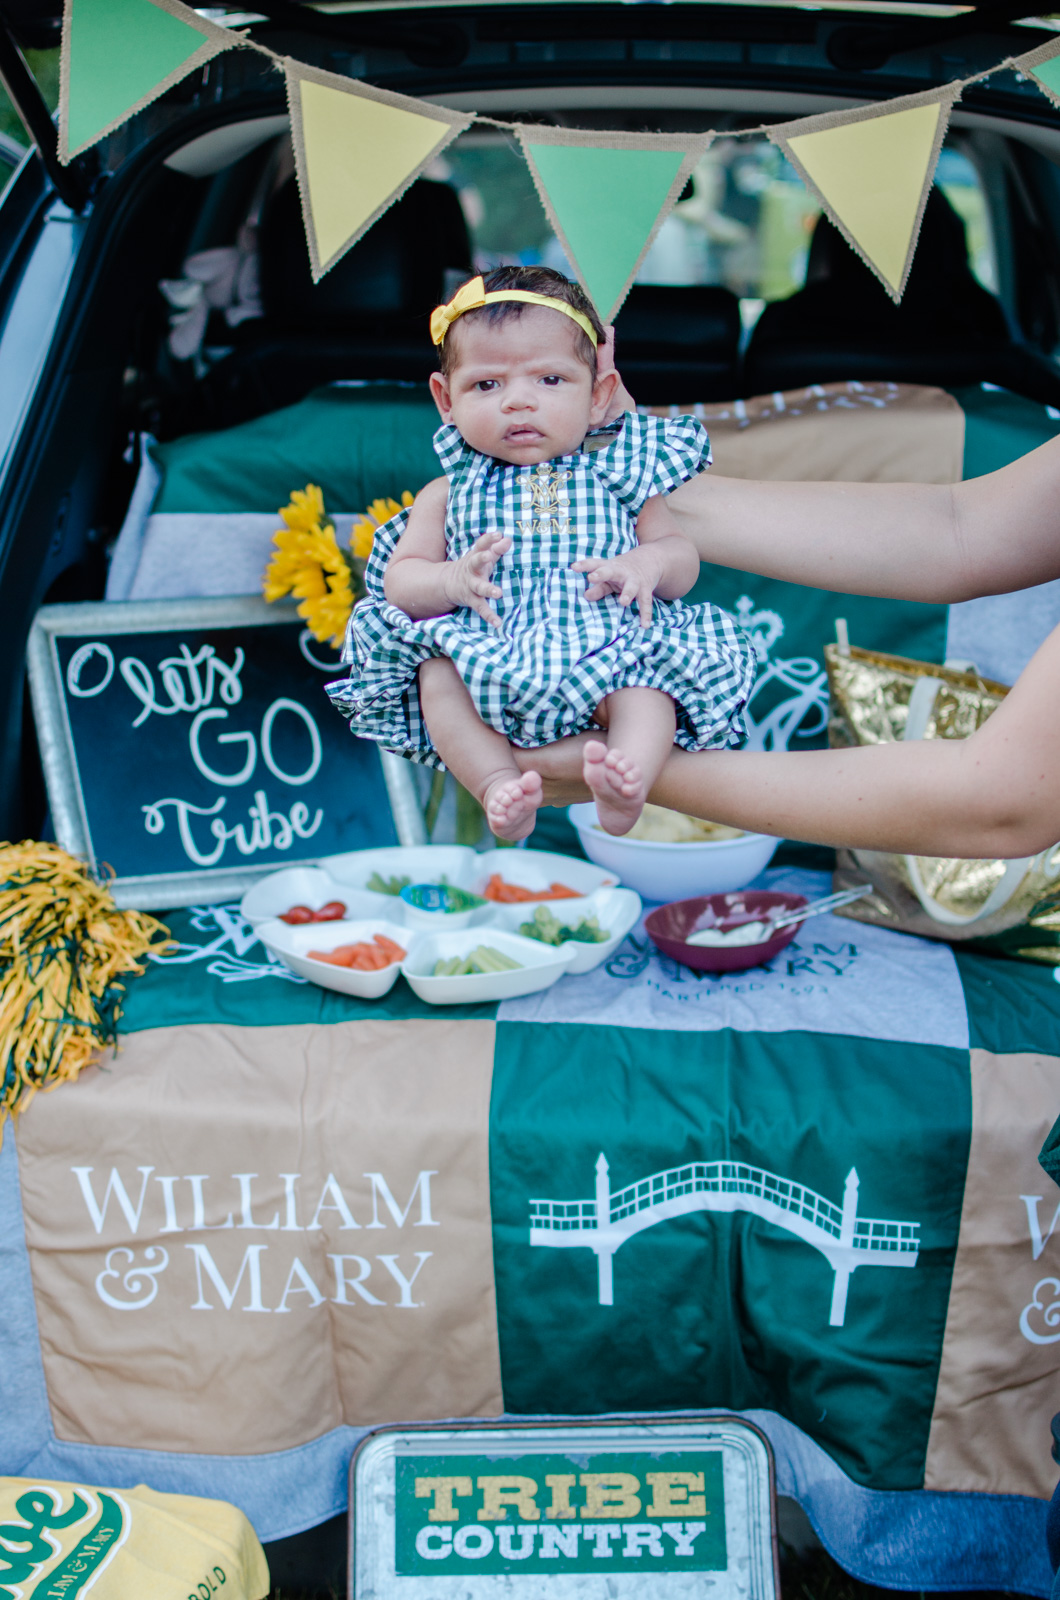 William and Mary baby gear | bylaurenm.com